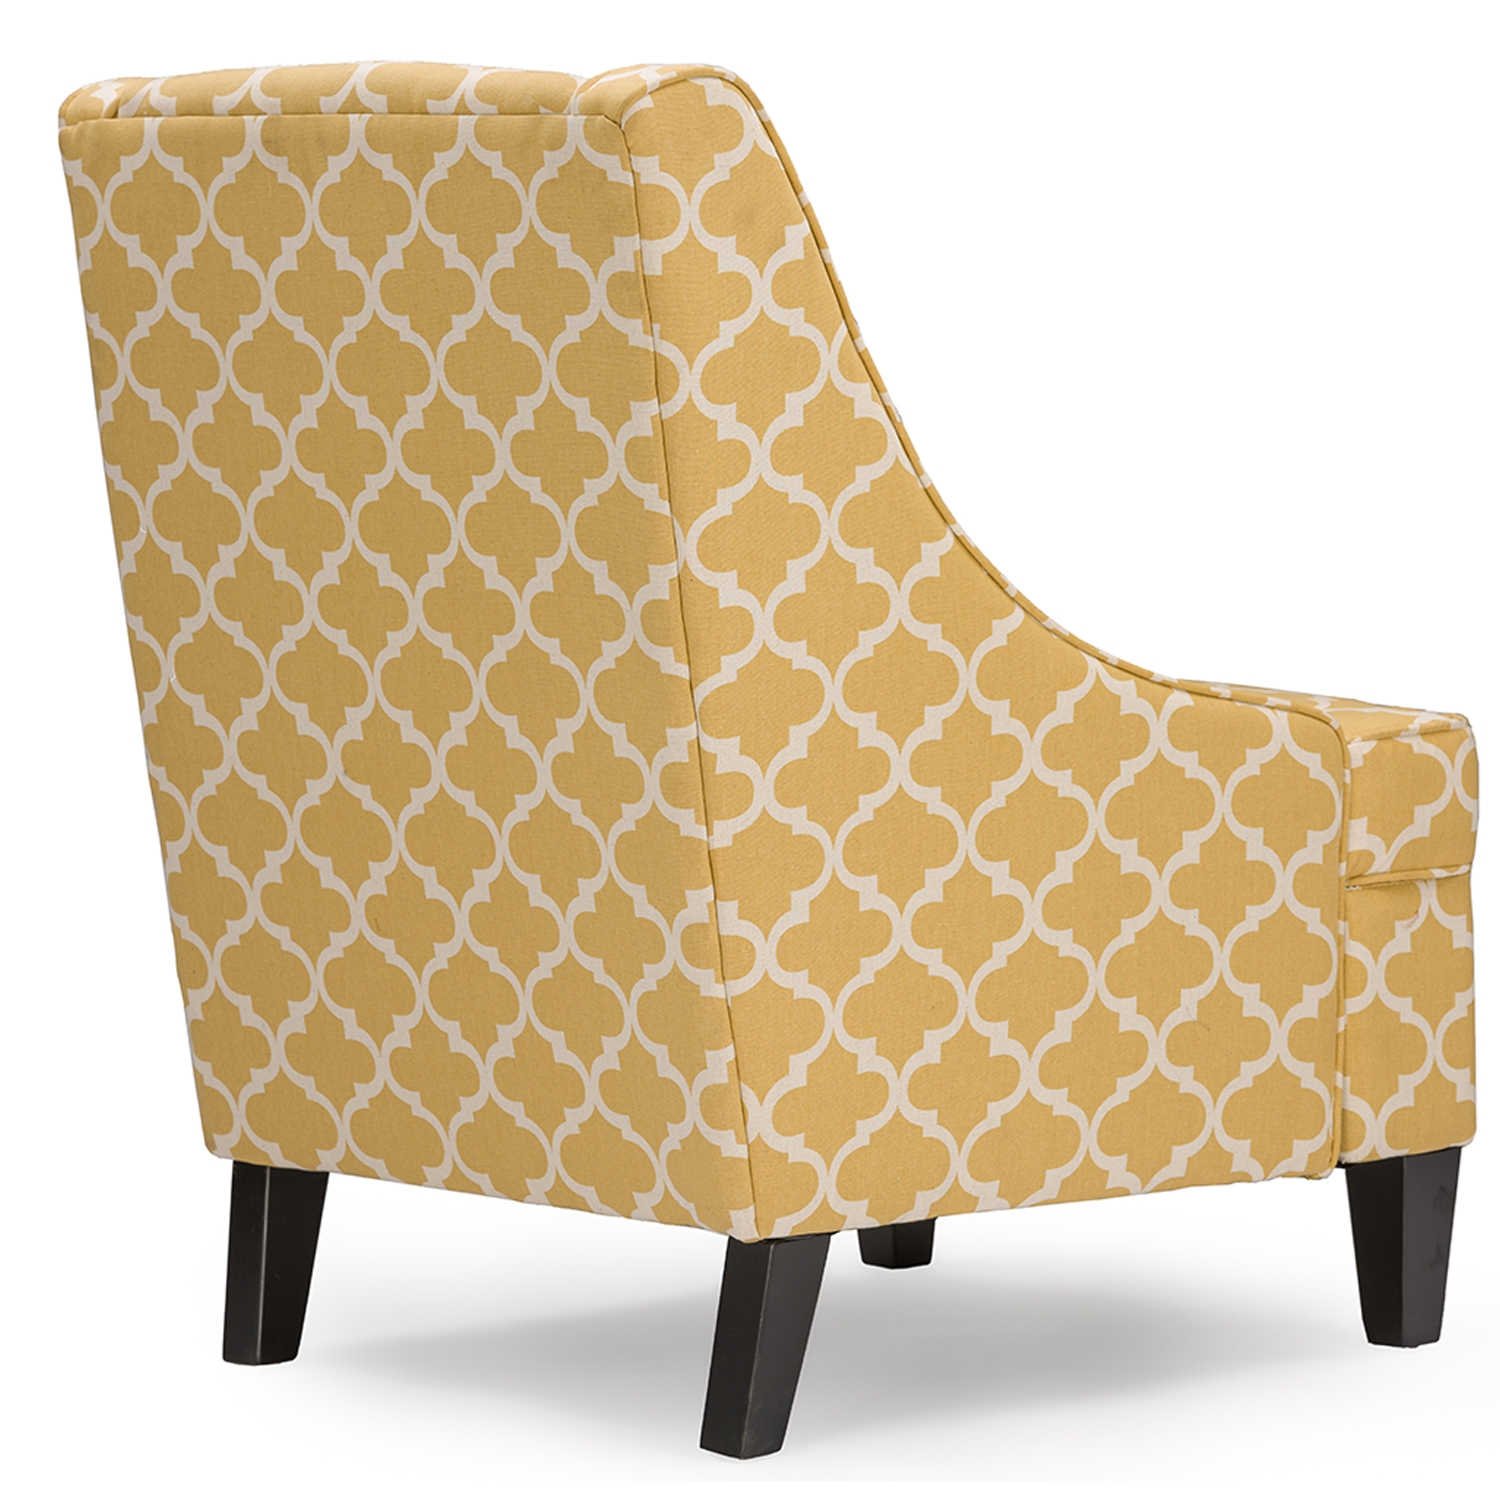 ... Baxton Studio Lotus Contemporary Fabric Armchair   Yellow Patterned  Fabric   BSODO 6281 Yellow ...